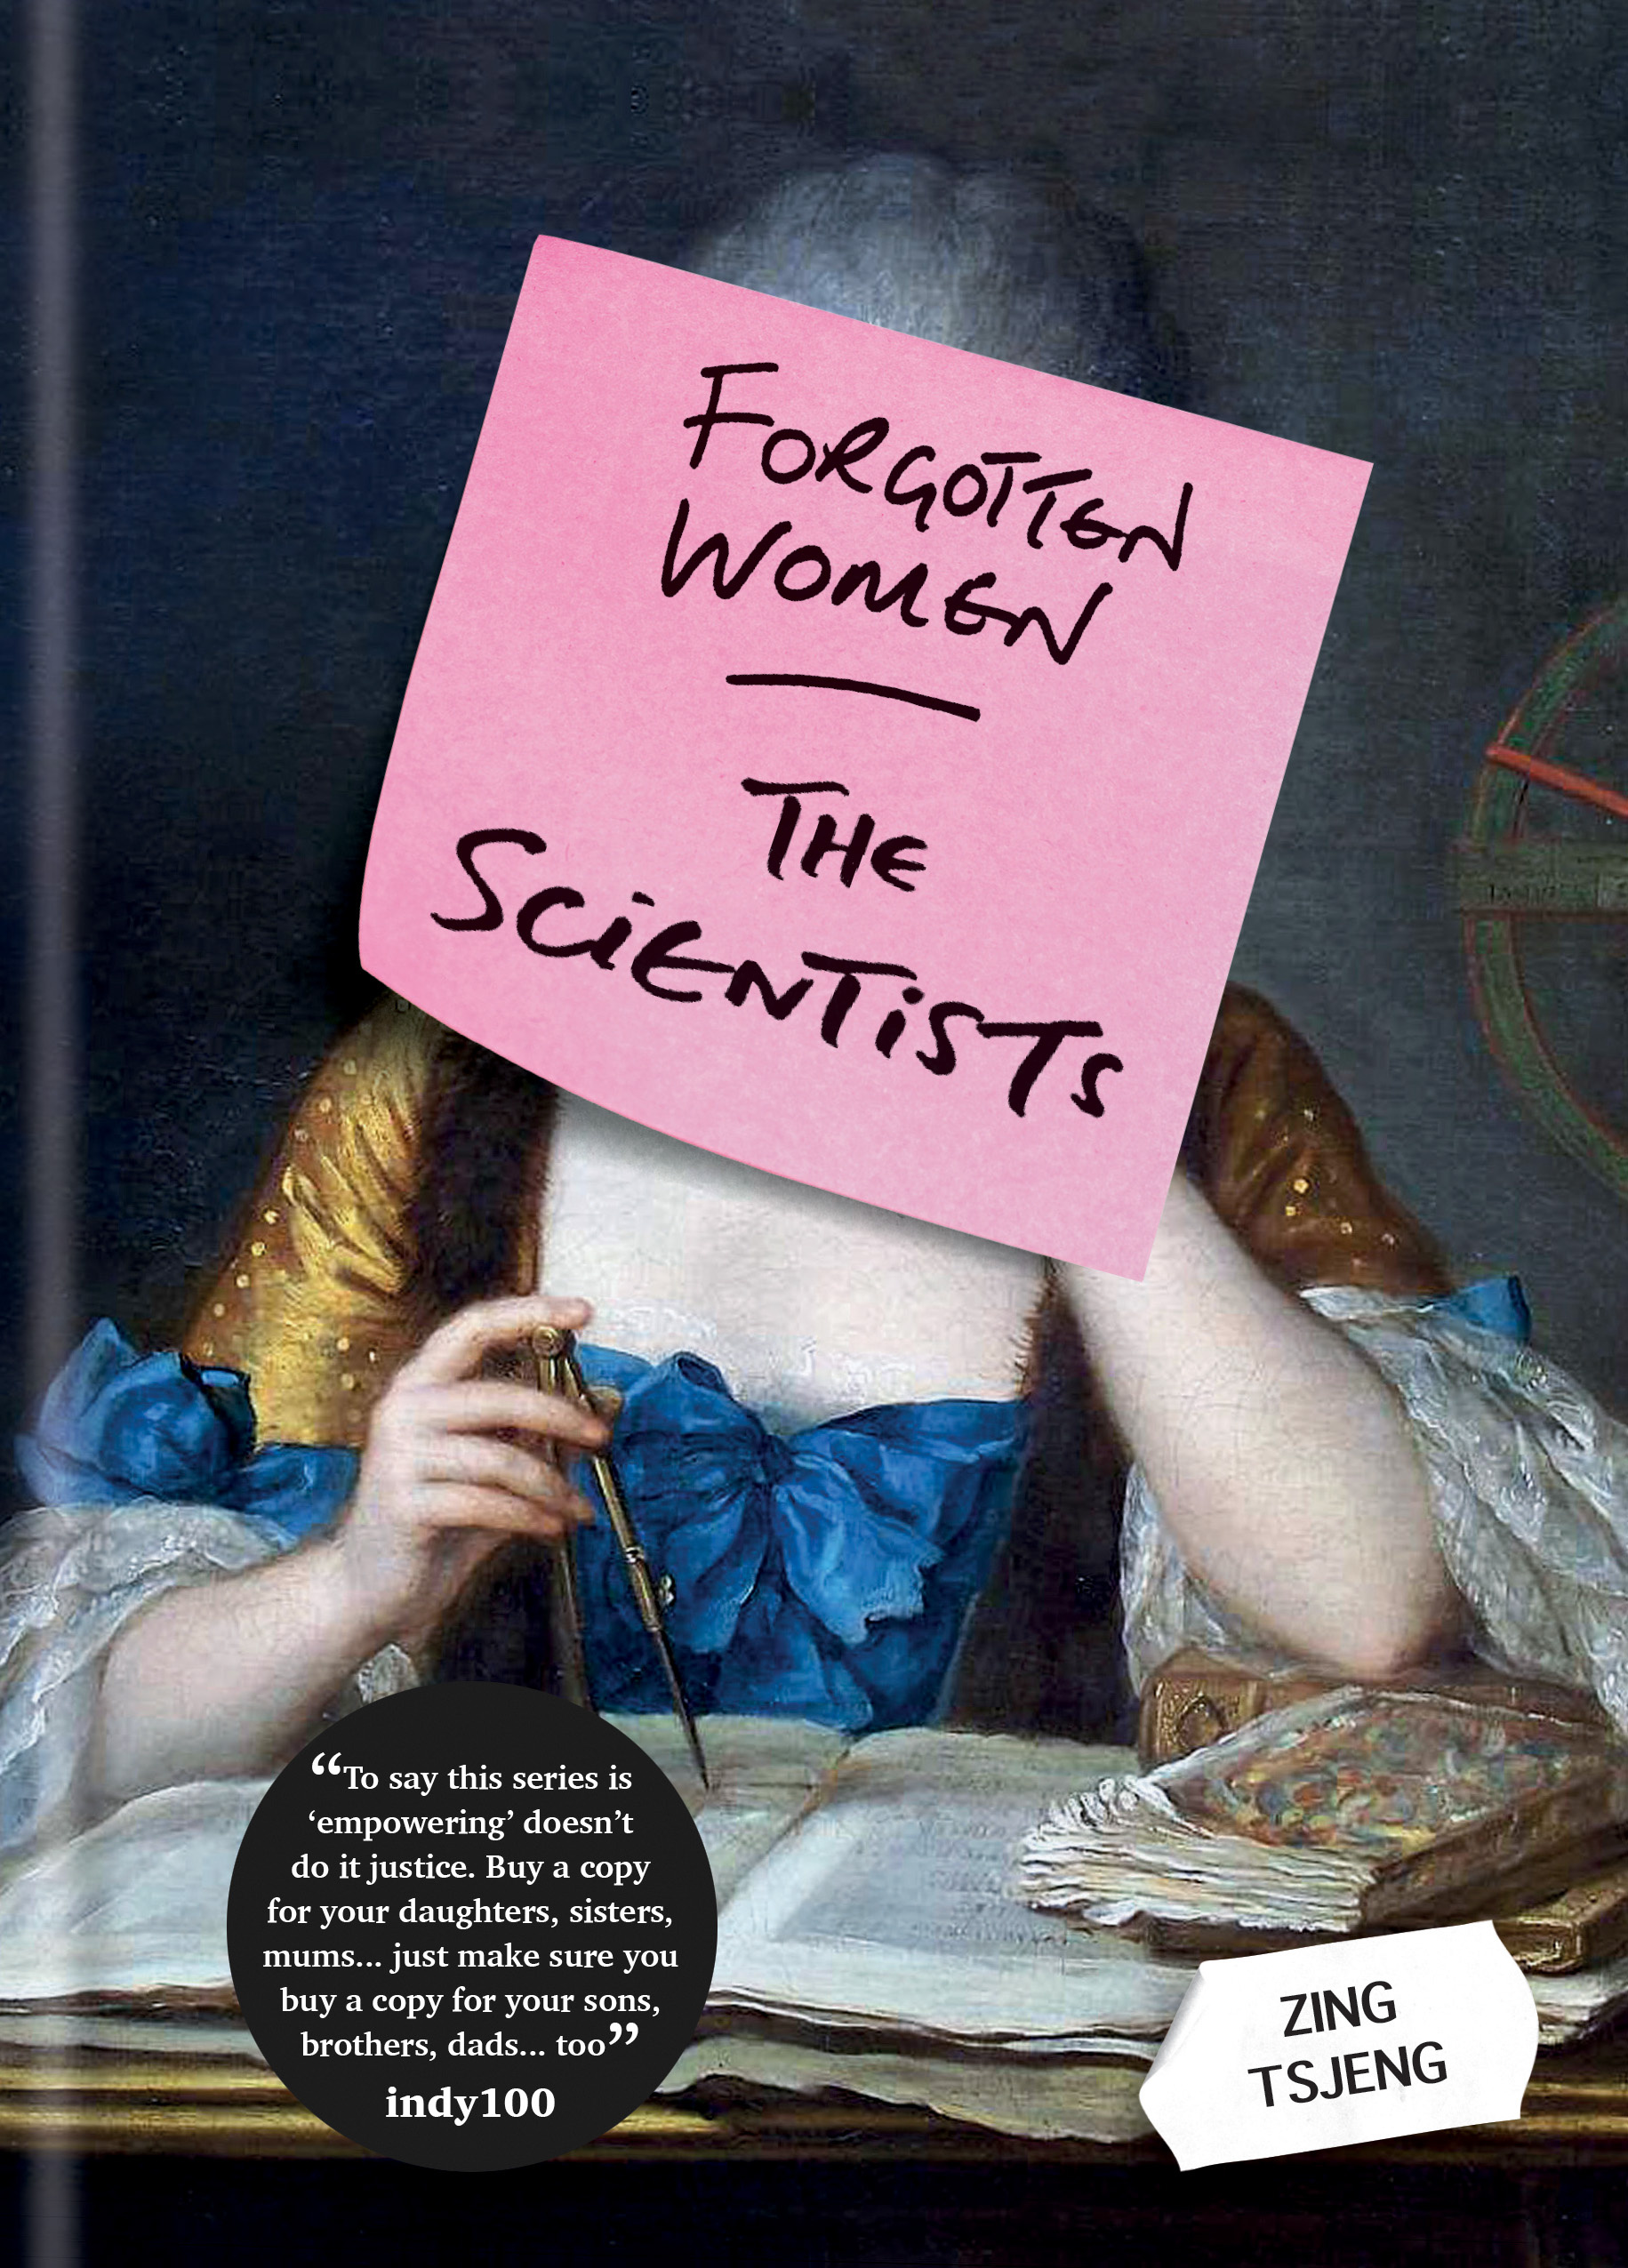 Forgotten Women_The Scientists